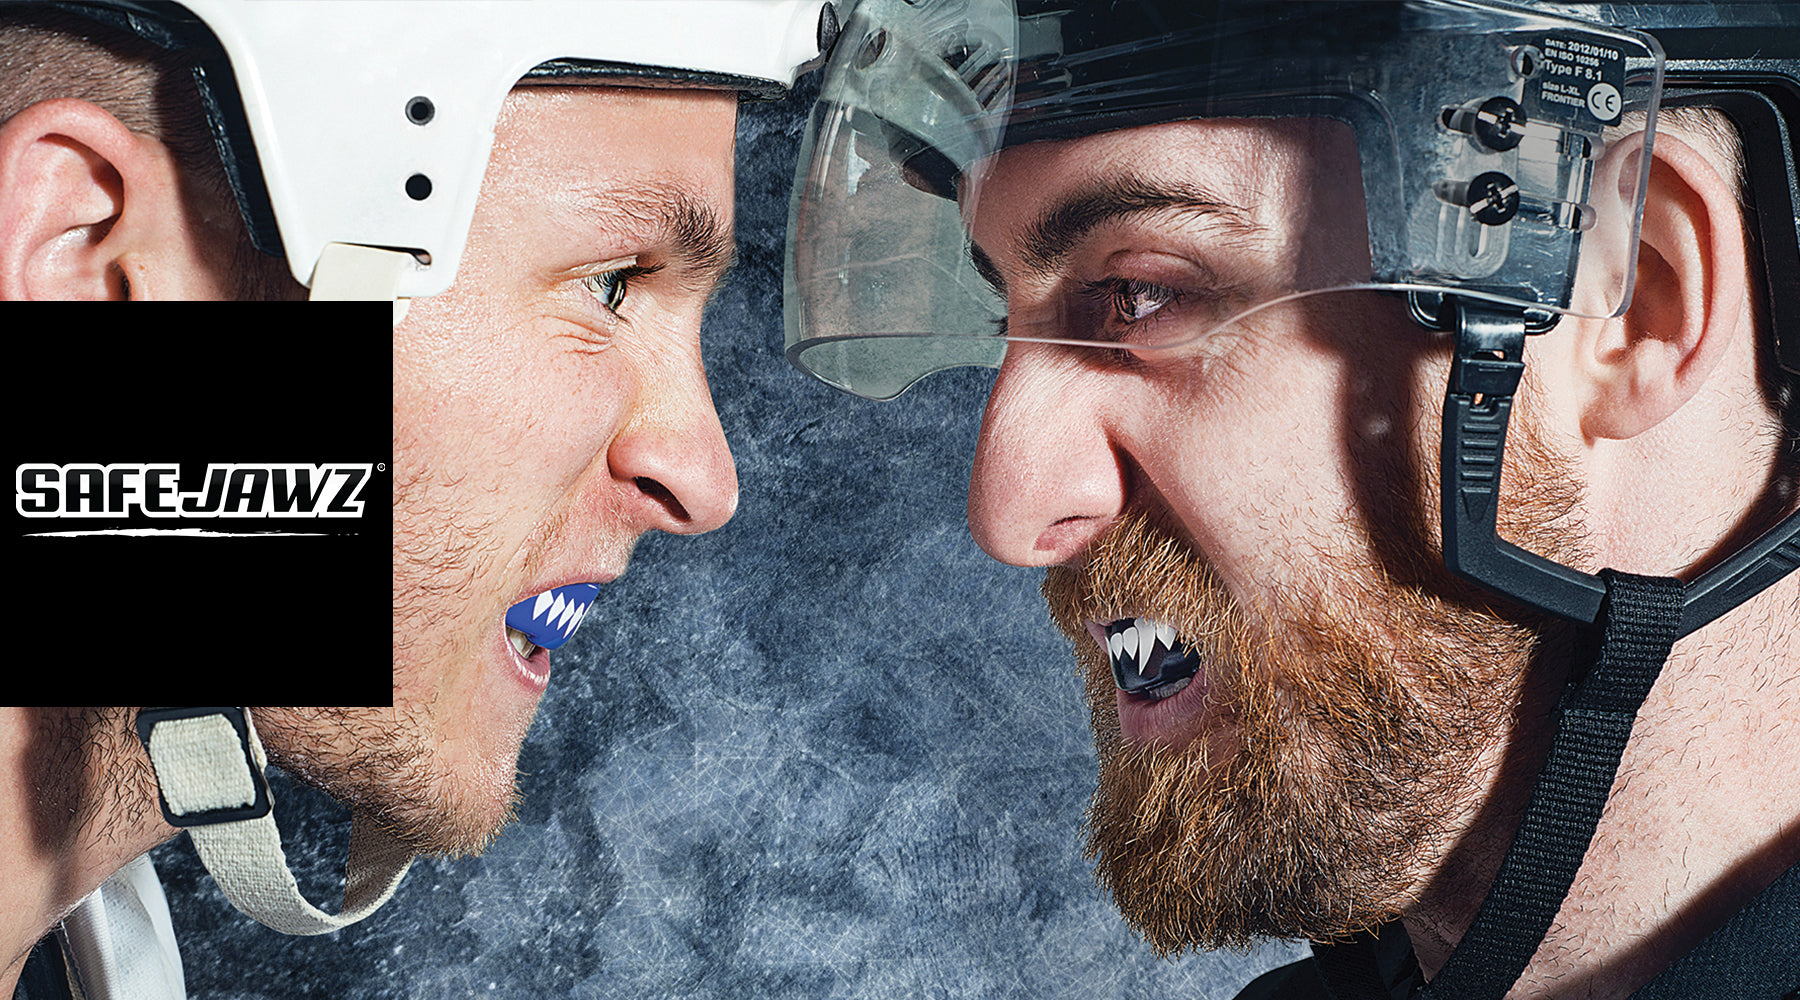 Safejawz - mouthguards- Team Sports - Lanctot Diamond Sport